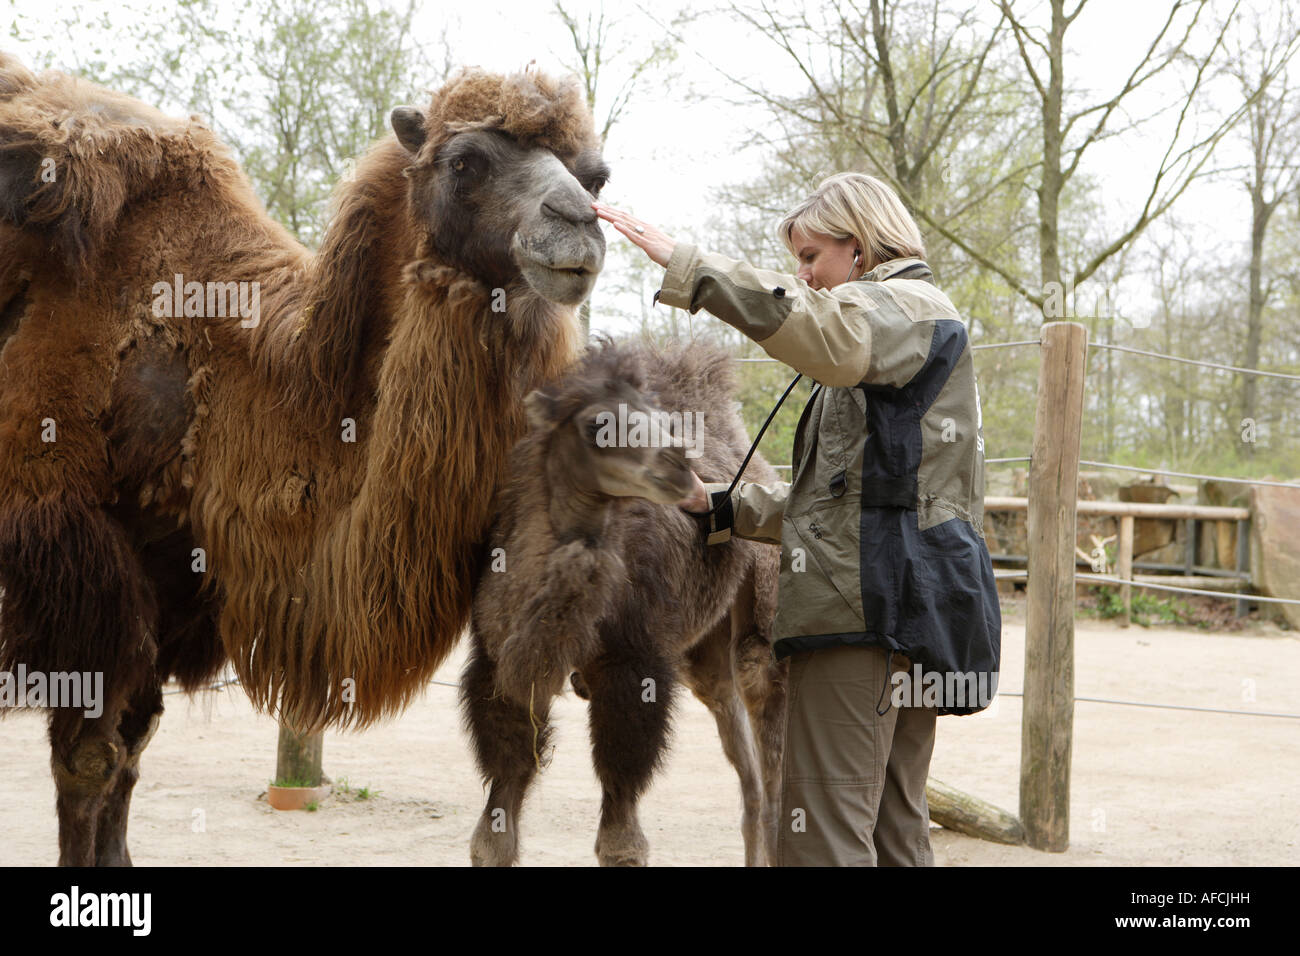 The zoo veterinary surgeon of the zoo Allwetterzoo Dr Sandra Silinski with the Bactrian camels - Stock Image